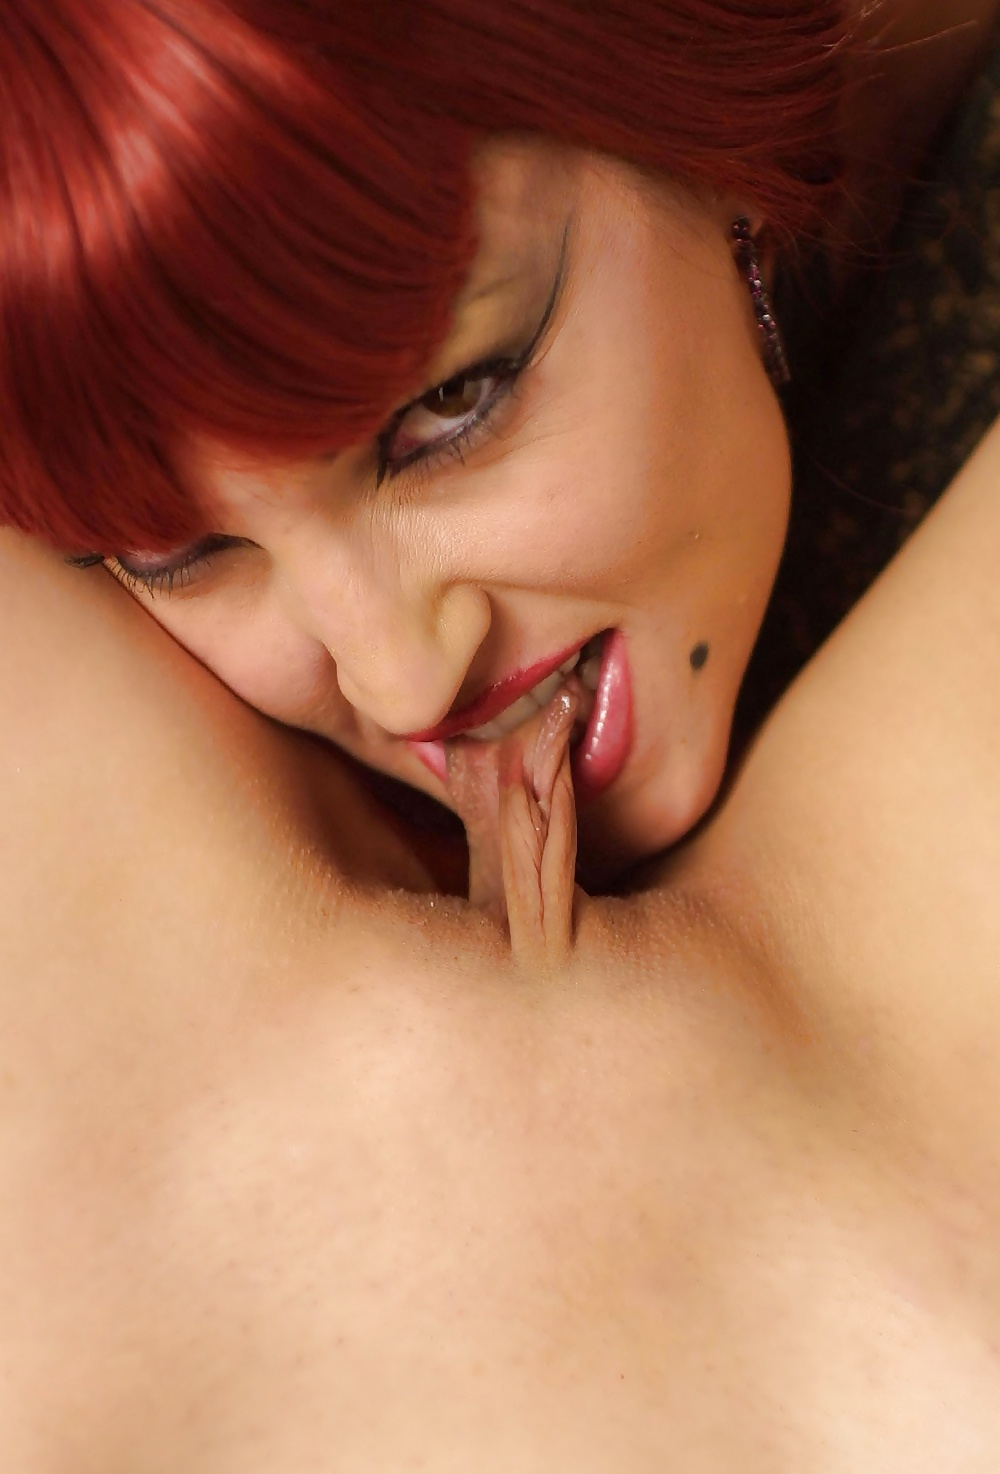 Biting her pussy lips — pic 2